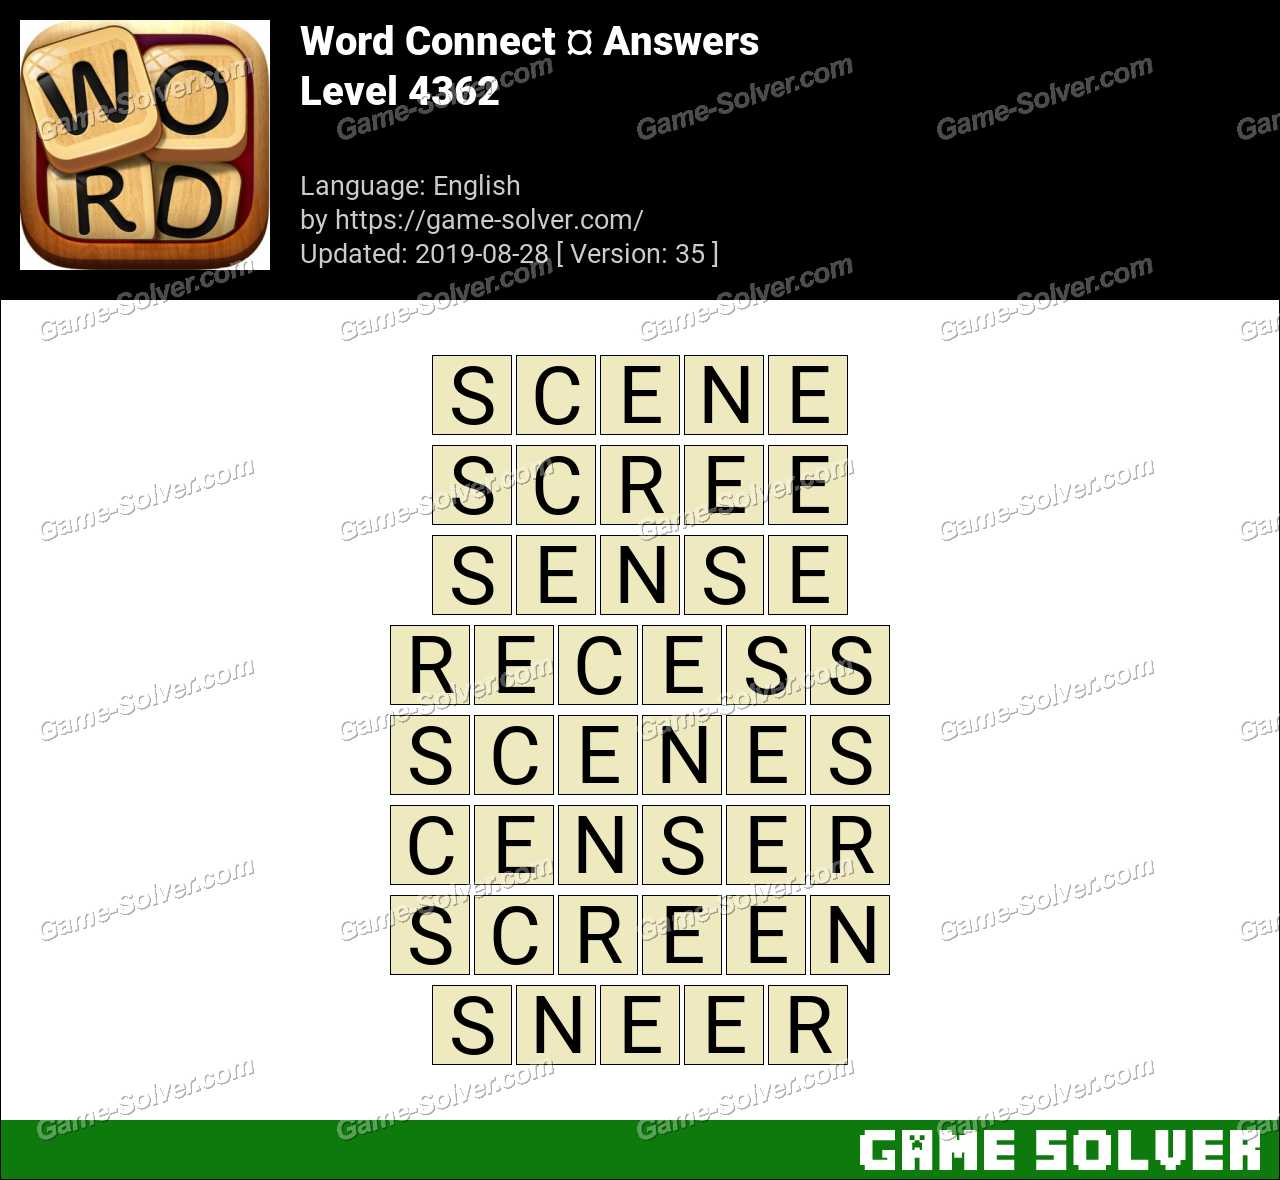 Word Connect Level 4362 Answers